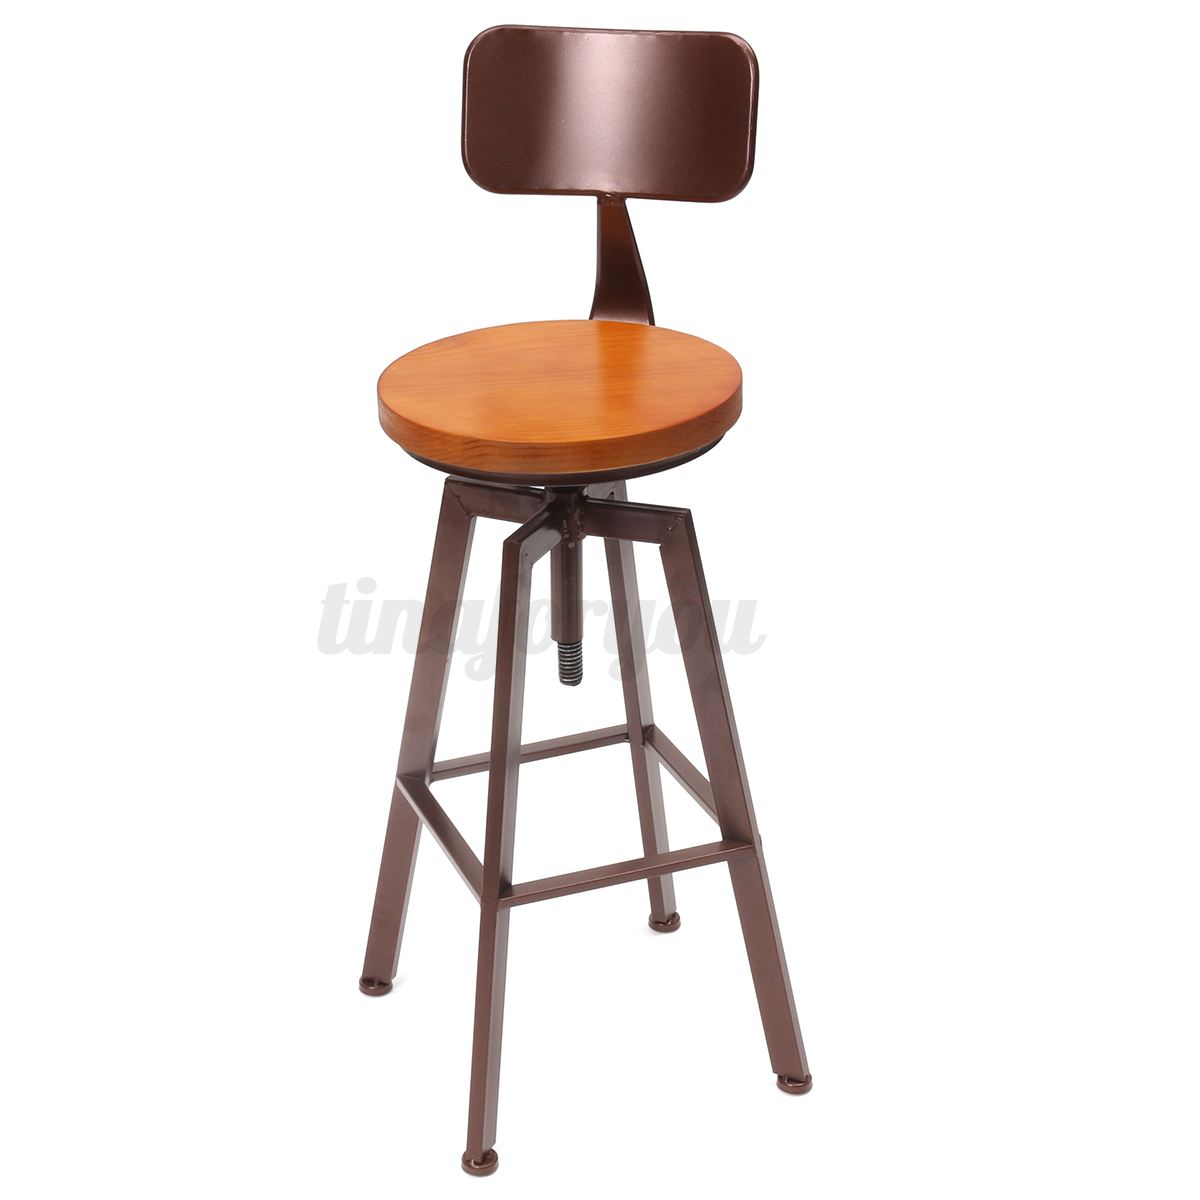 Industrial Counter Height Bar Stools Vintage Industrial Bar Stool Metal Adjustable Height